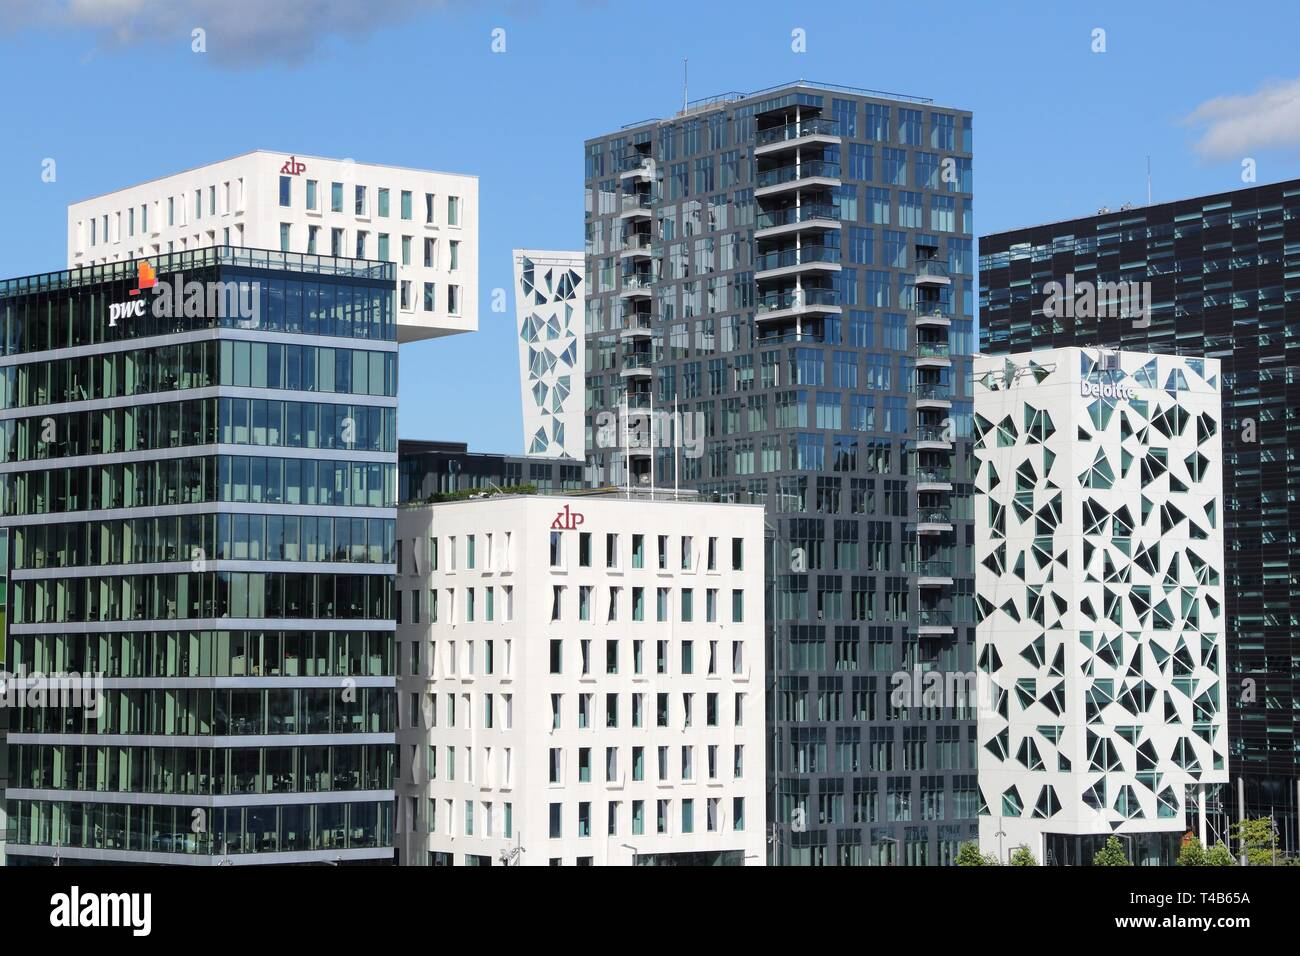 OSLO, NORWAY - AUGUST 2, 2015: Architecture of Bjorvika district in Oslo. It is a part Fjord City, major urban redevelopment project for Oslo for 2000 - Stock Image